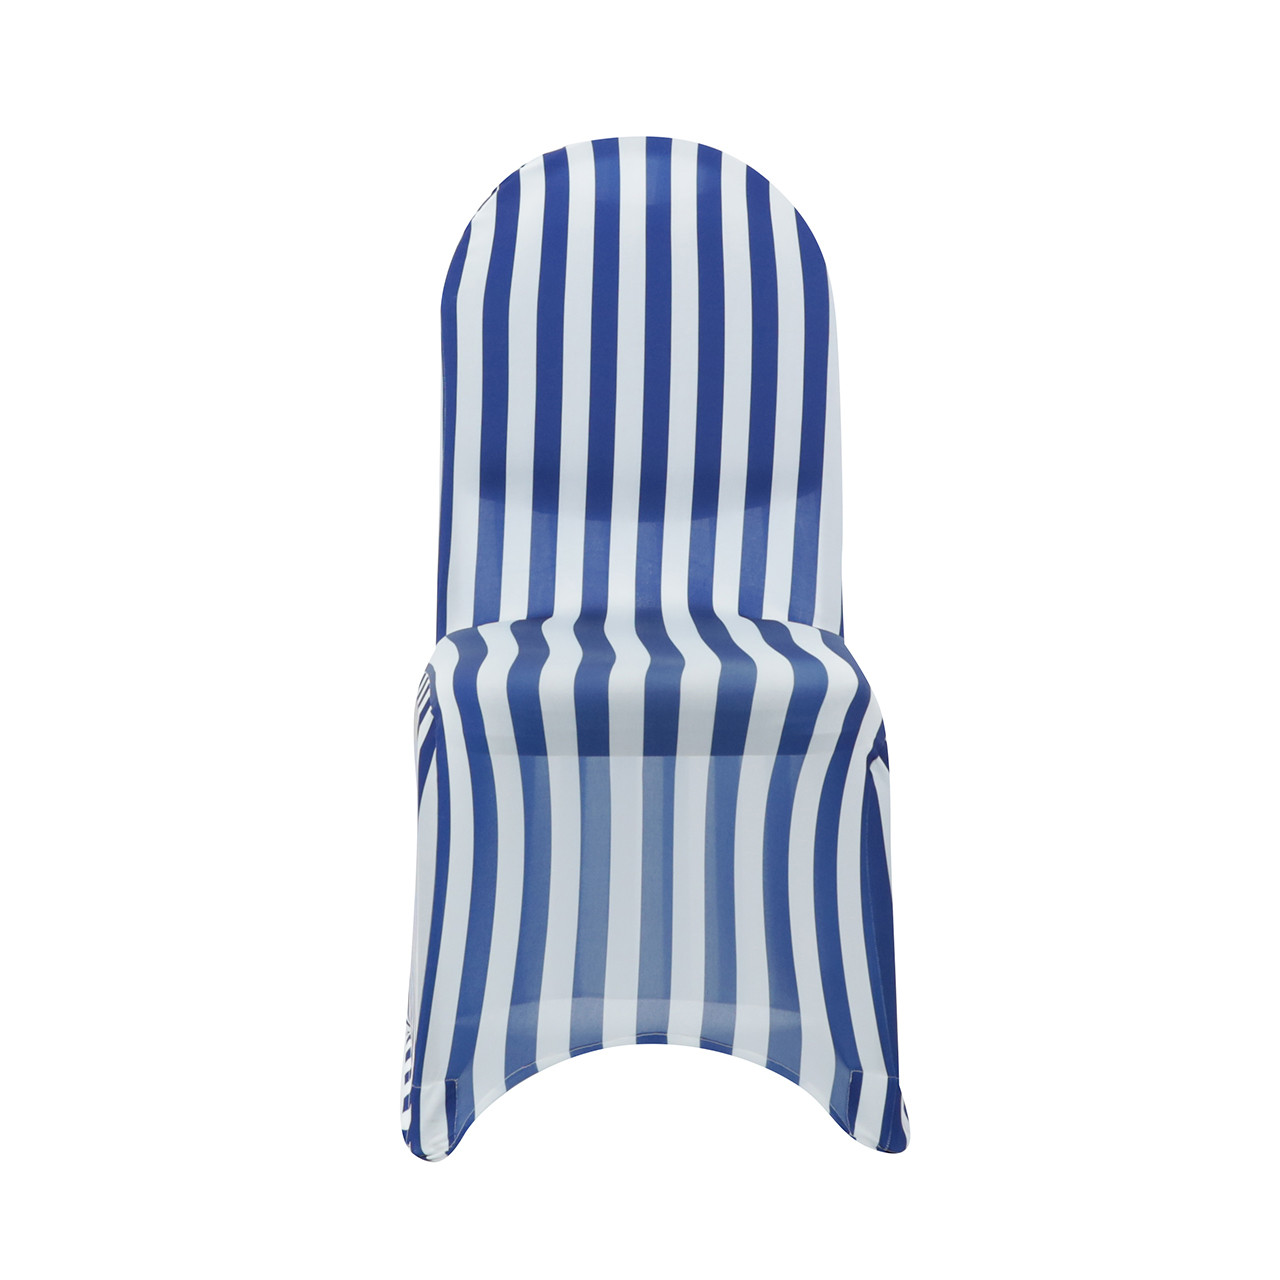 Stretch Spandex Banquet Chair Cover Striped White And